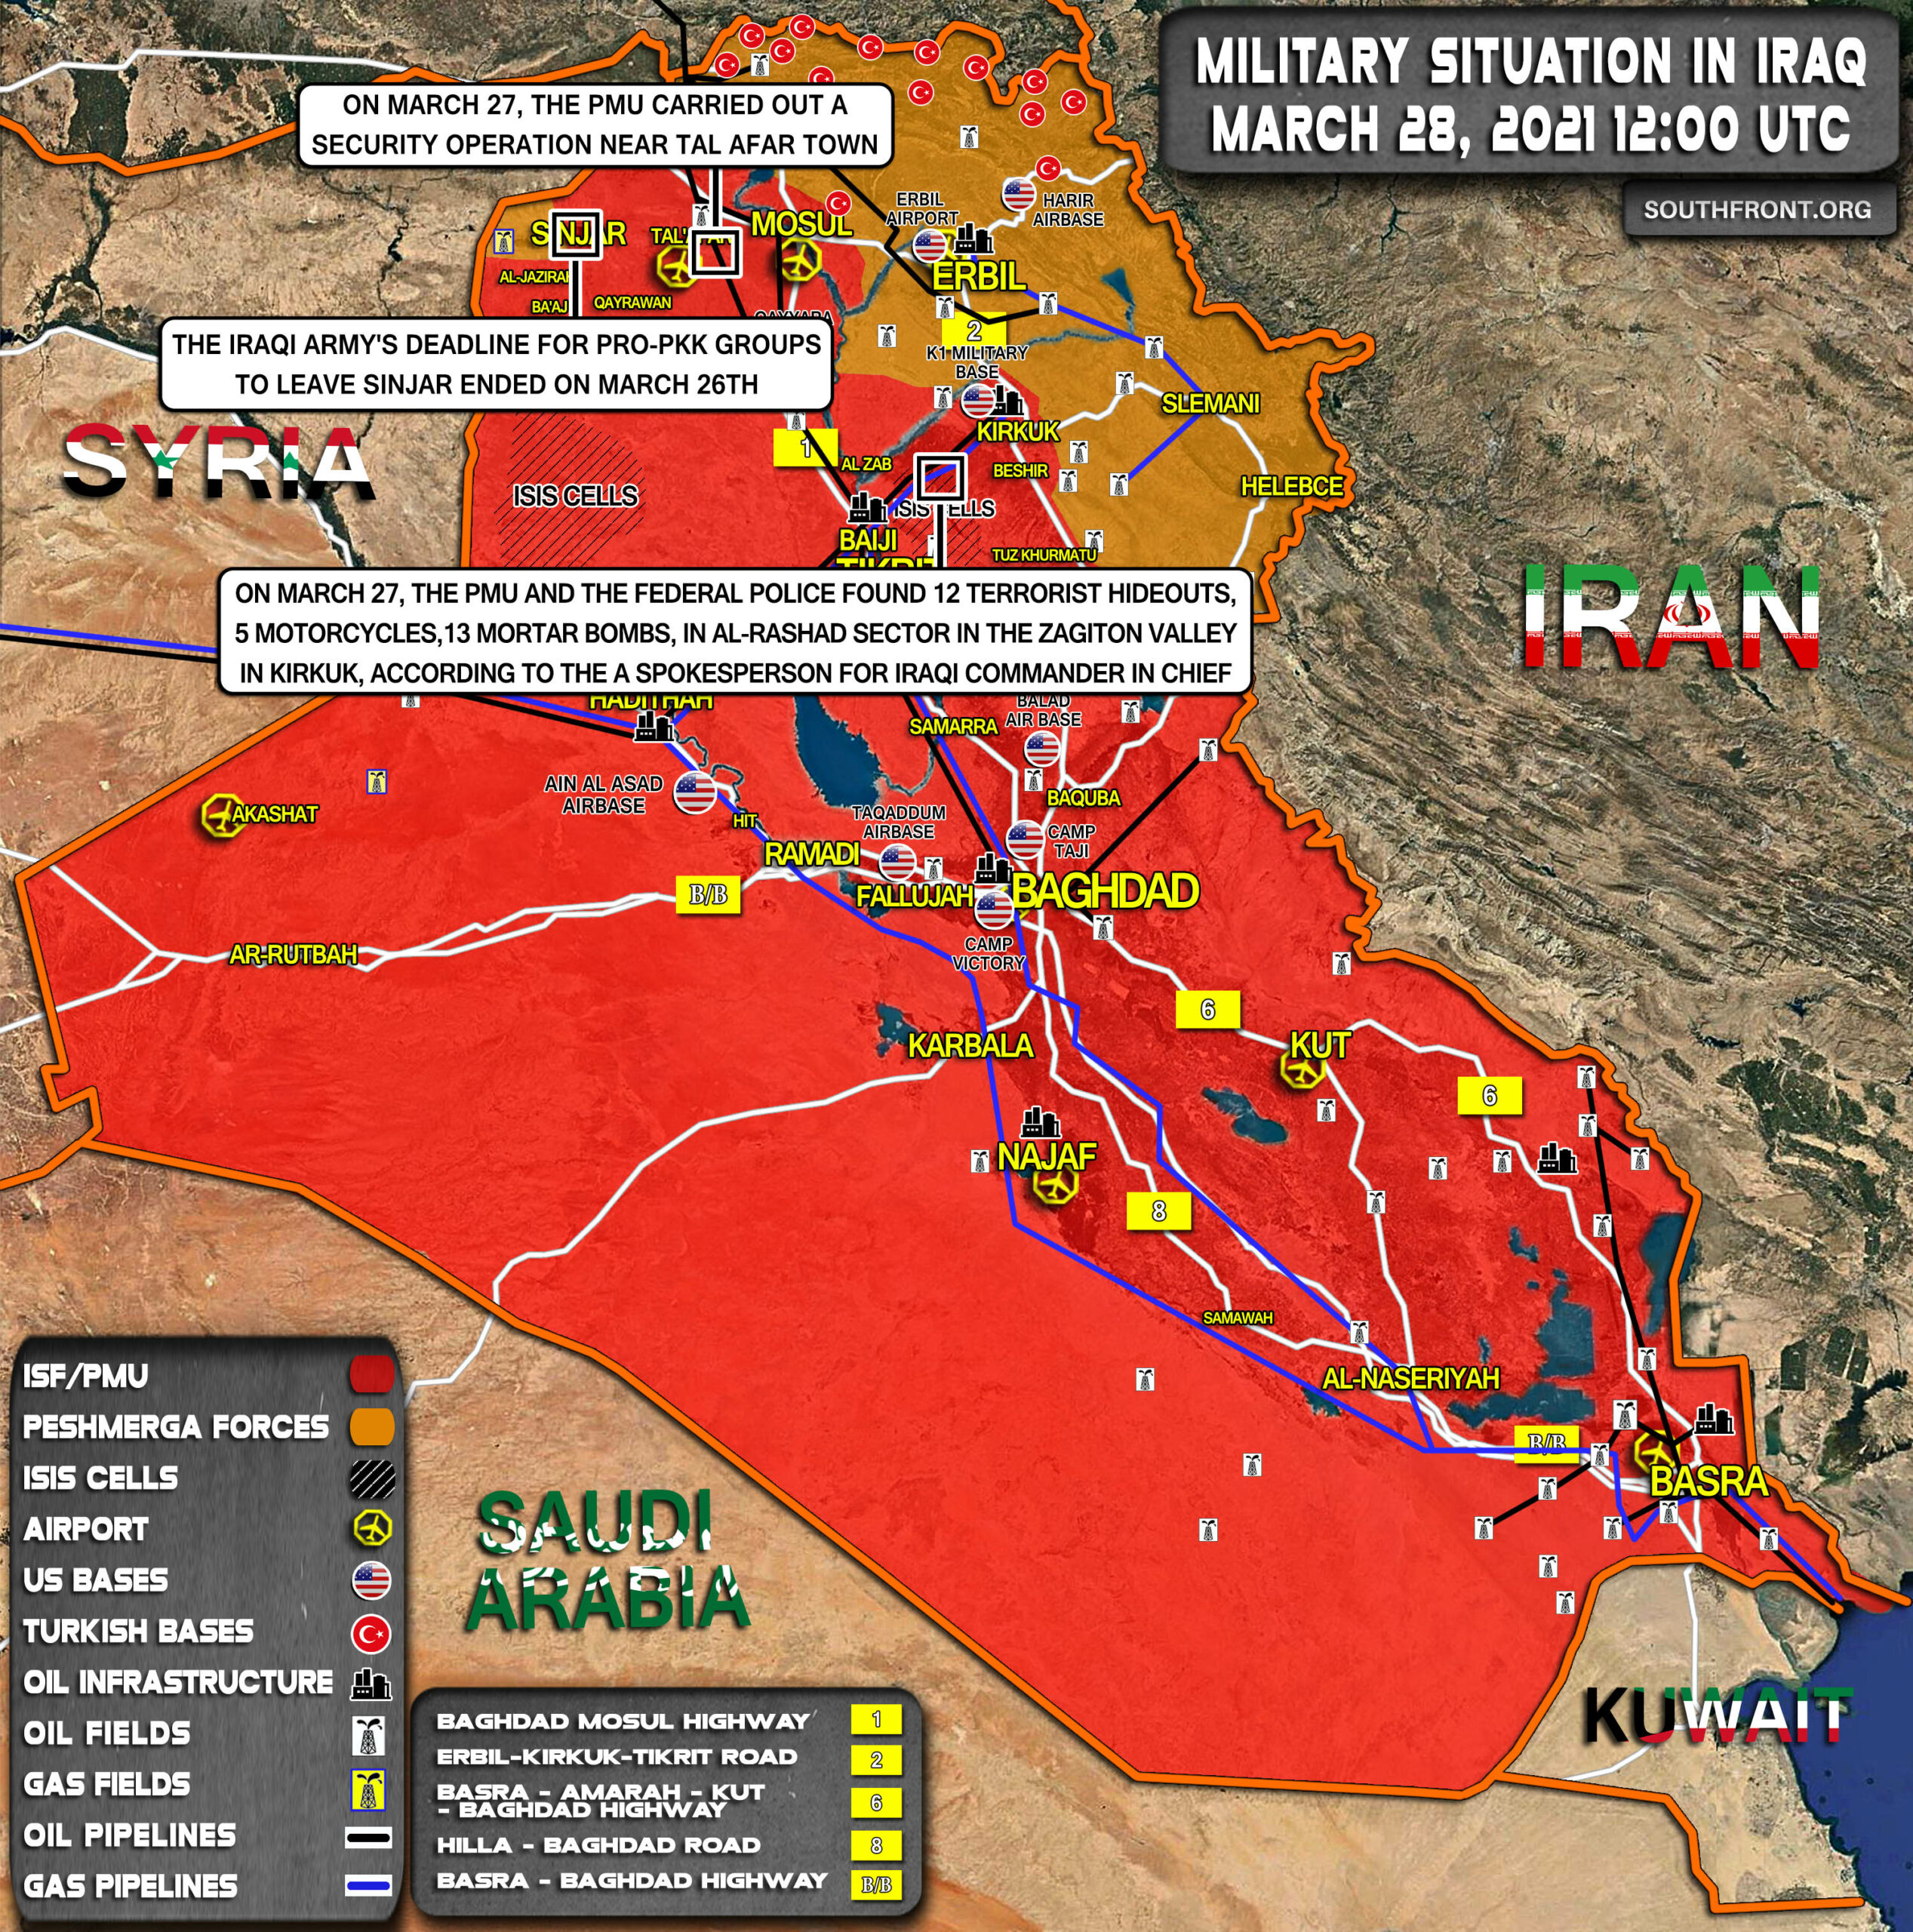 Military Situation In Iraq On March 28, 2021 (Map Update)